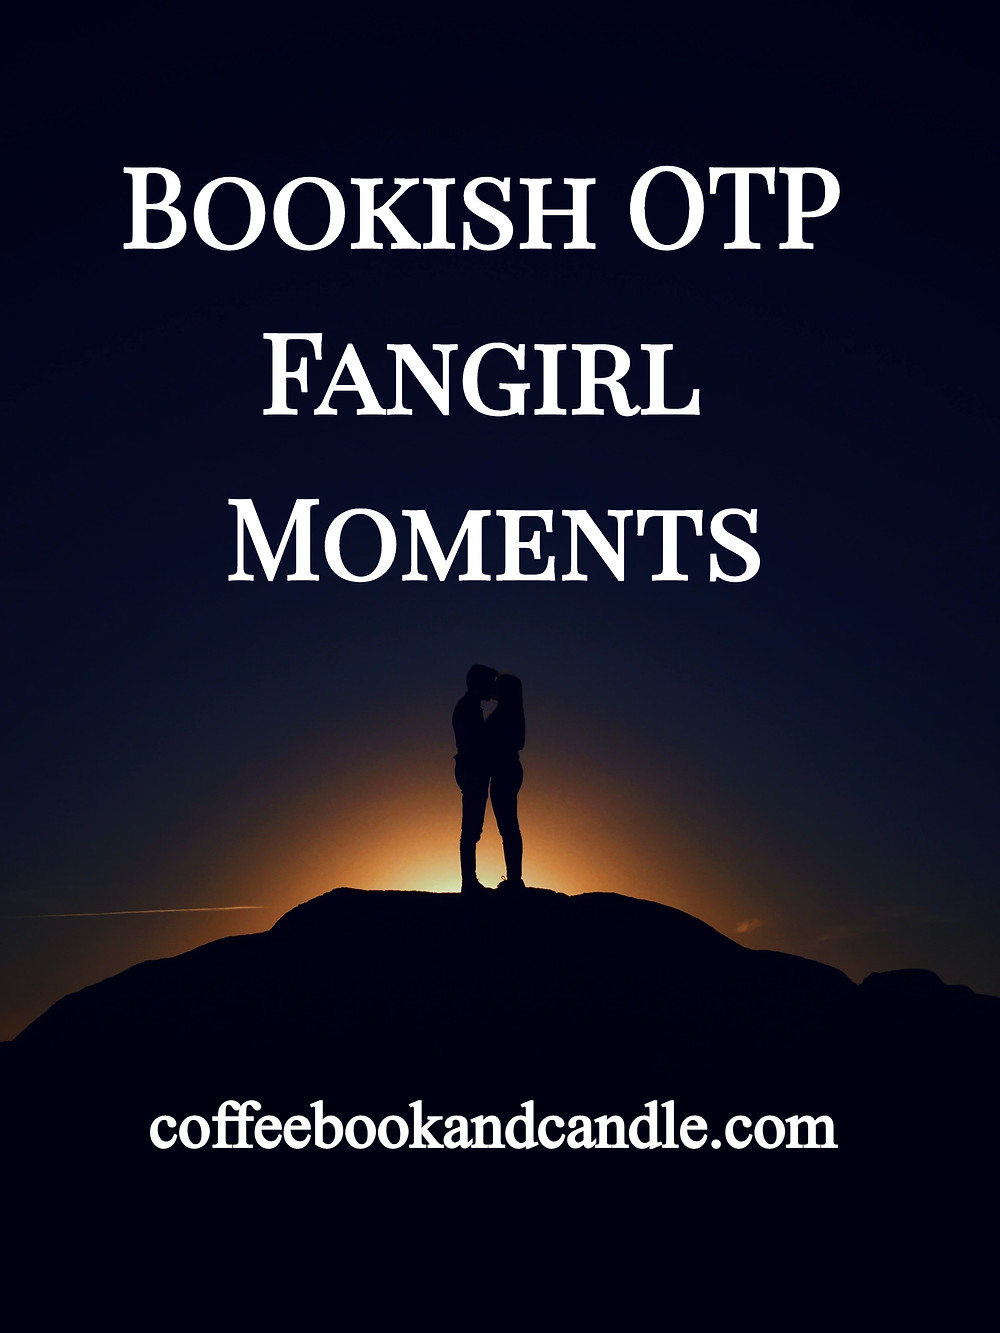 Bookish OTP Fangirl Moments Coffee, Book, and Candle